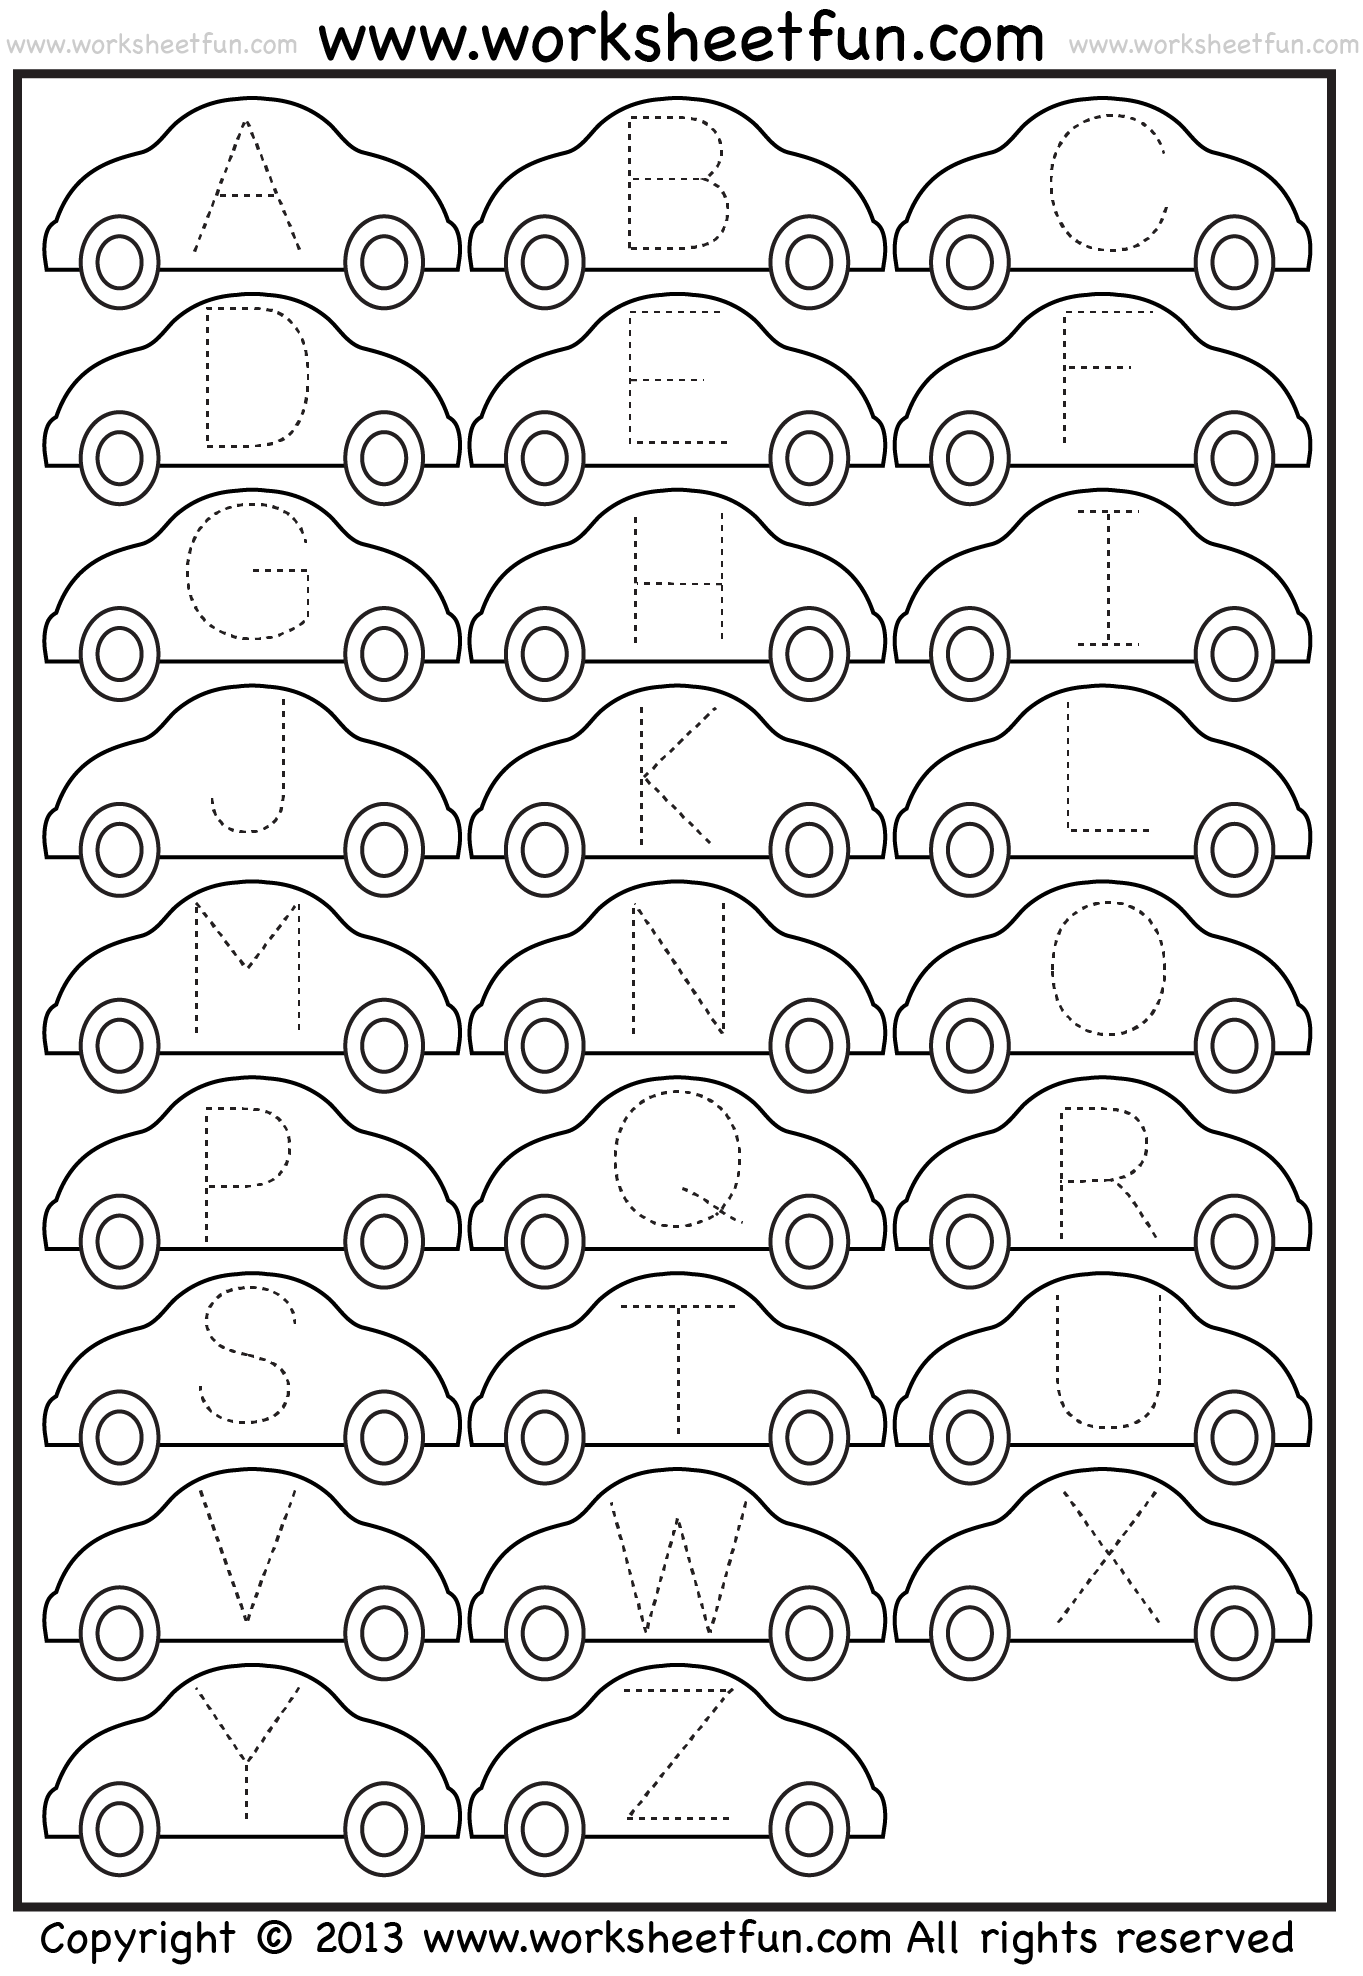 Worksheets Tracing Alphabet Worksheets tracing letter free printable worksheets worksheetfun worksheet car